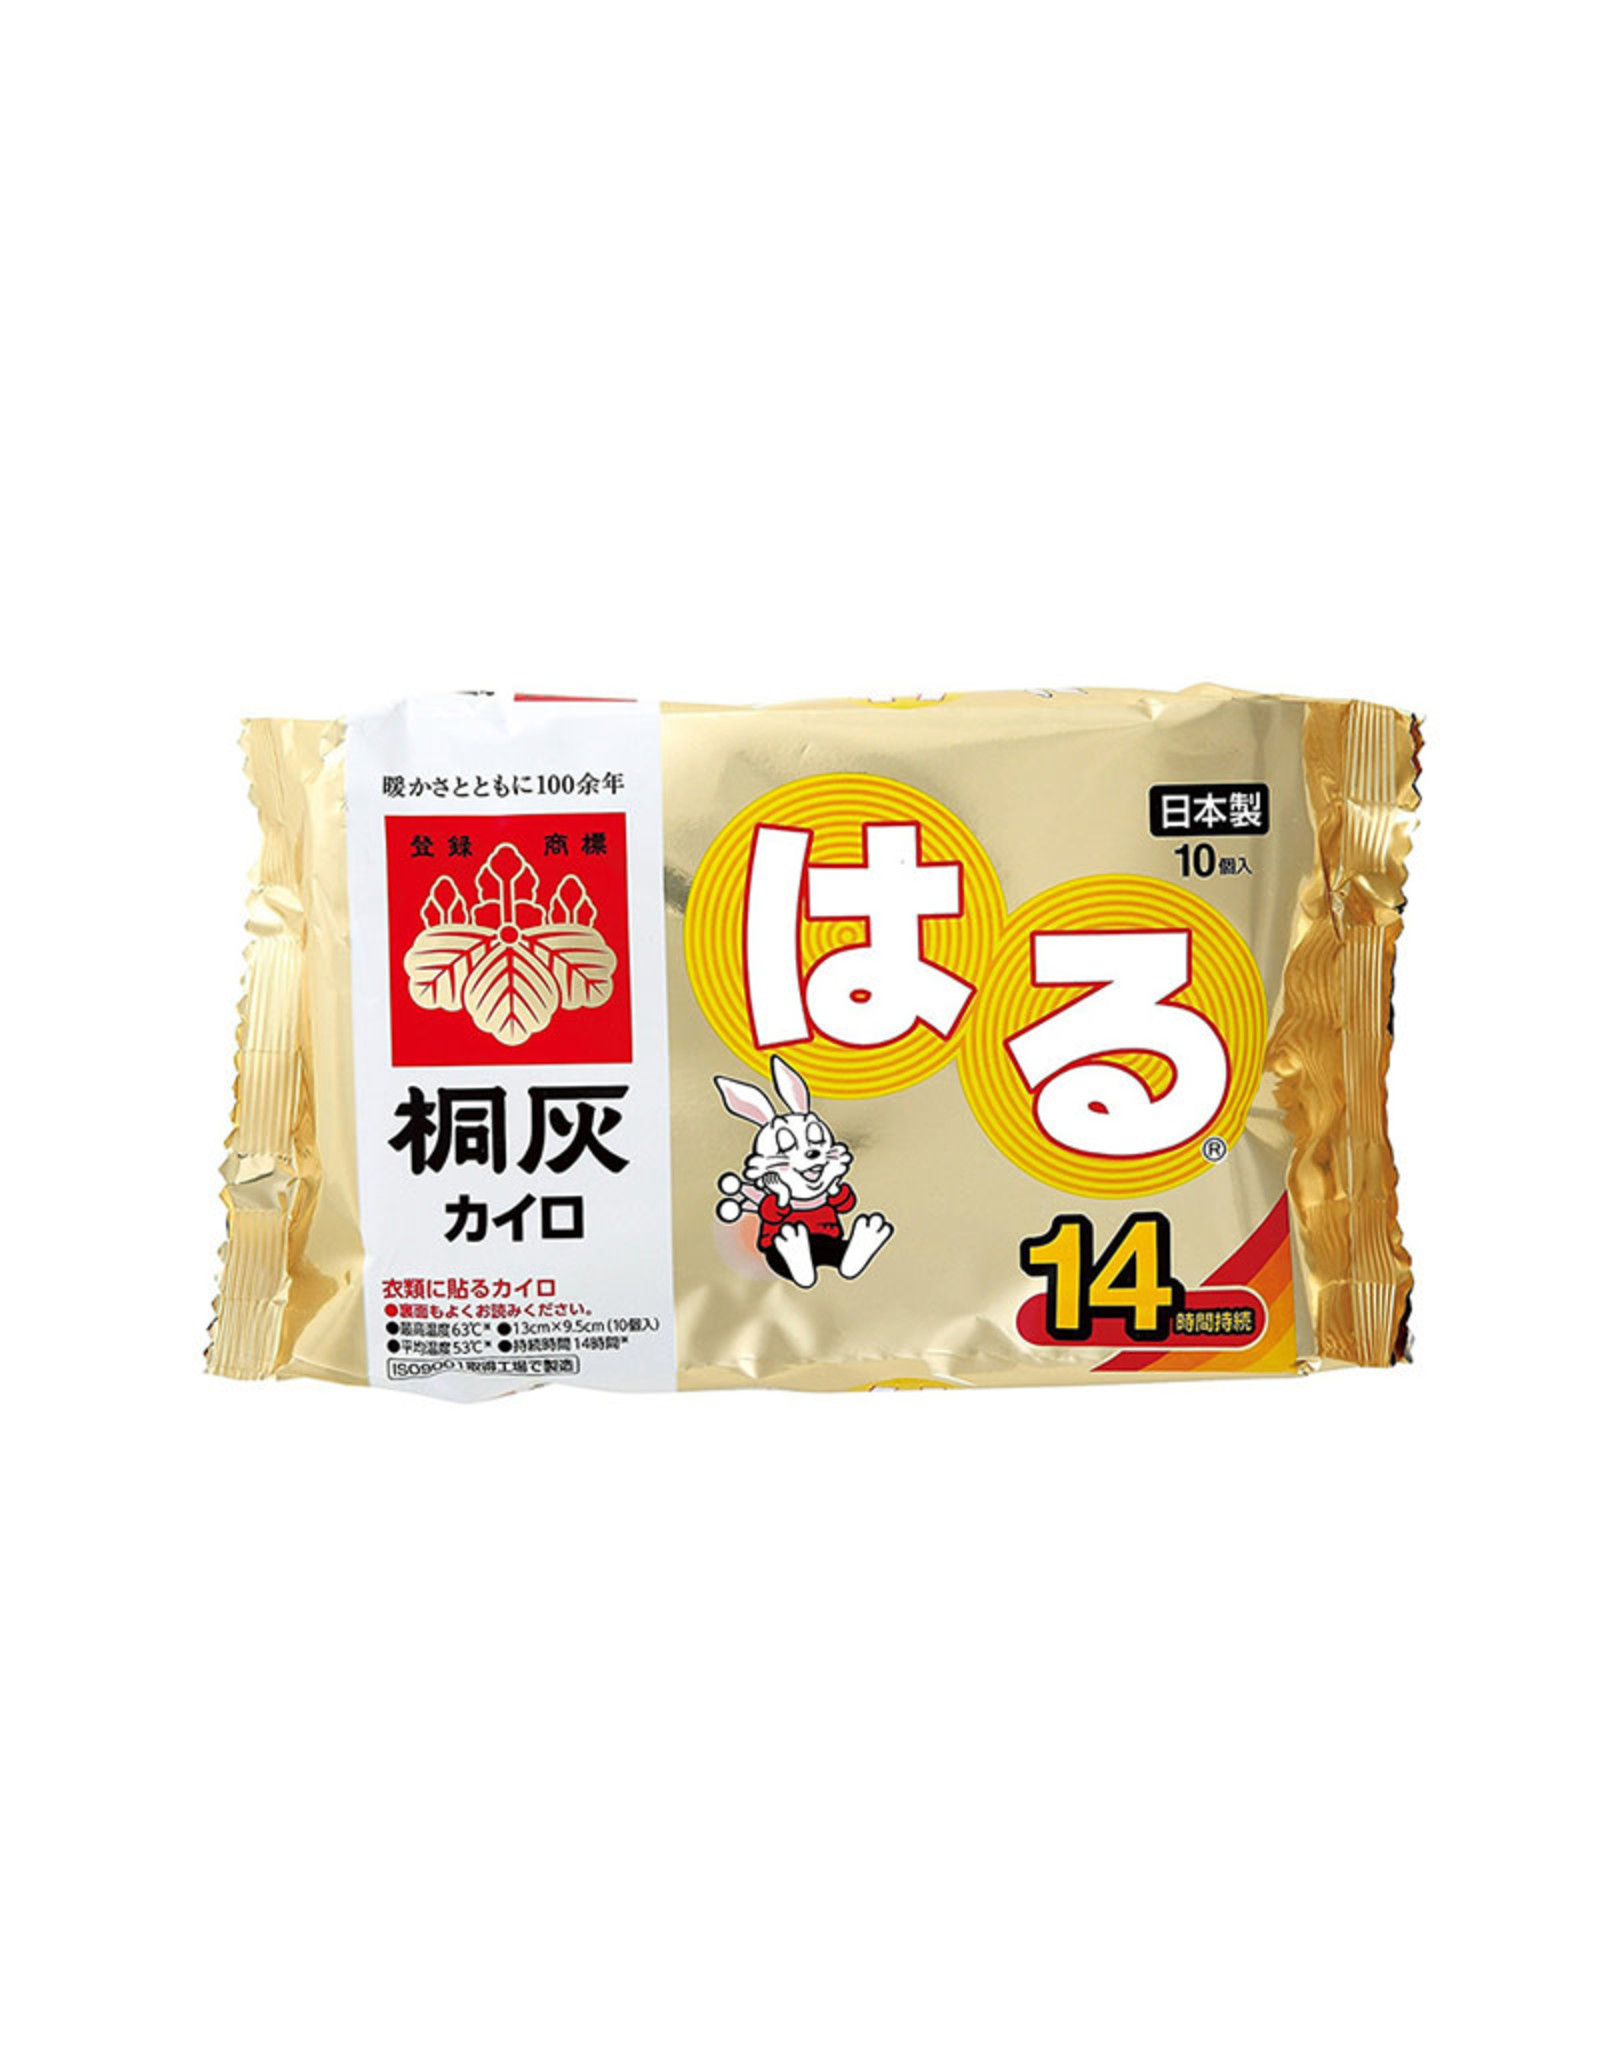 Kiribai Kiribai Sticky Heat Pack 10pcs